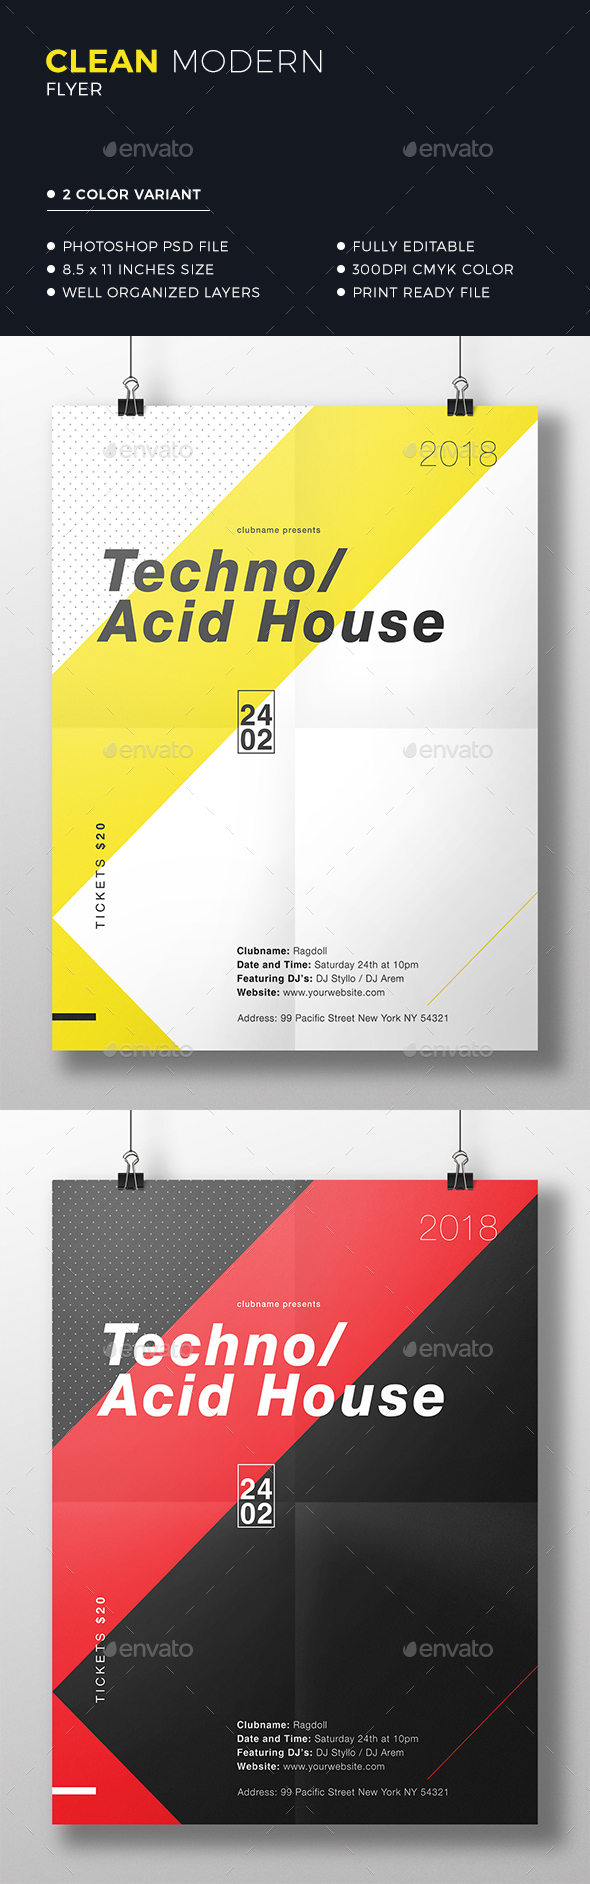 Clean Minimal Flyer - Events Flyers